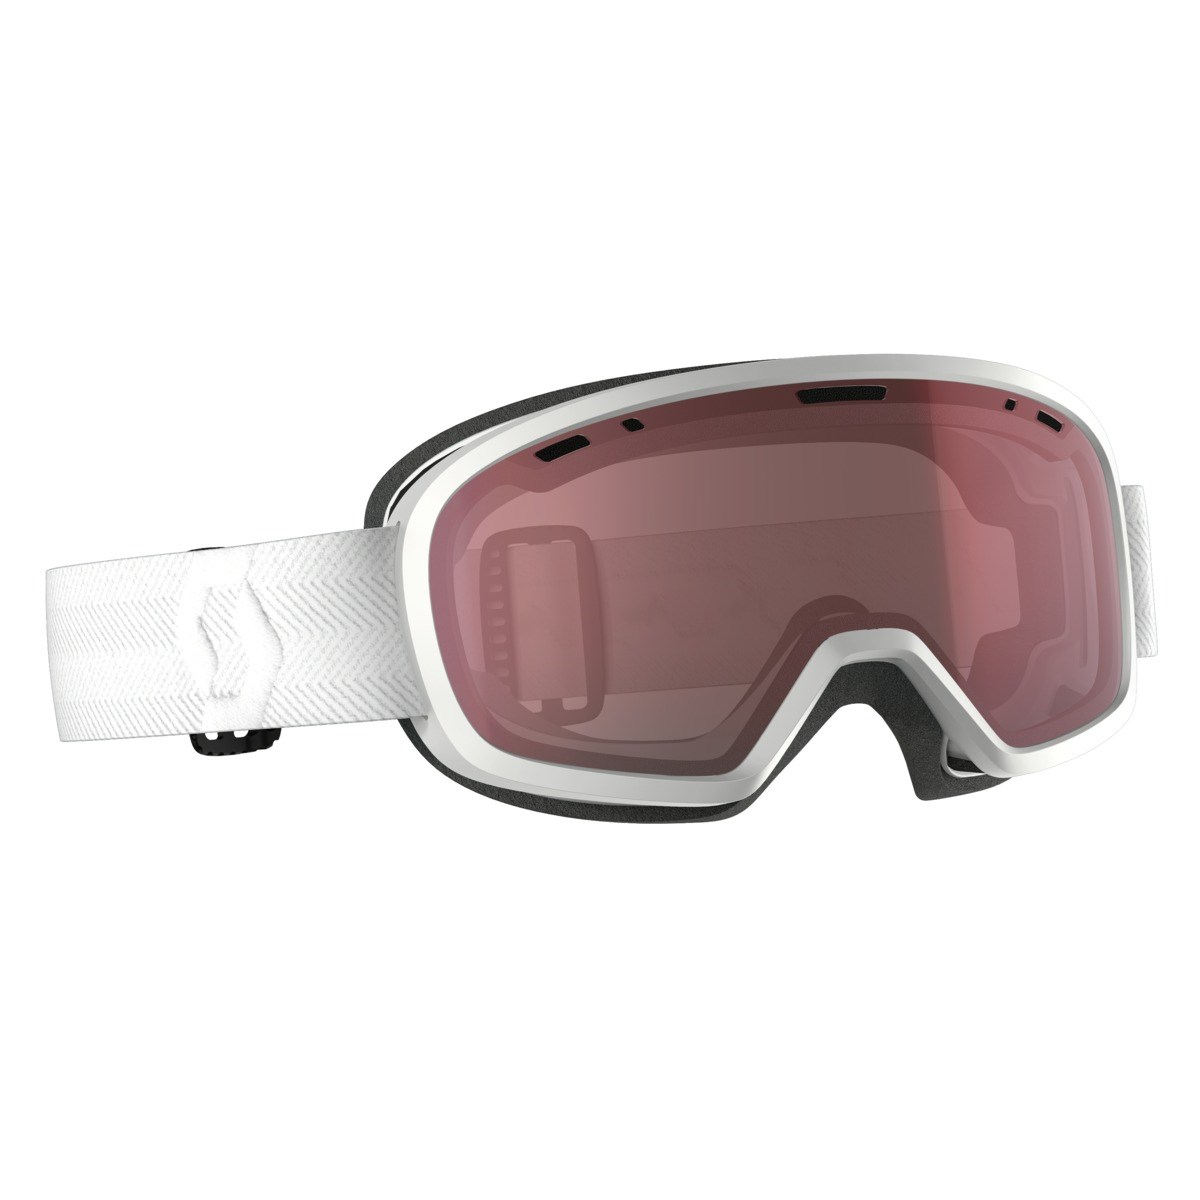 f28c79c7b7 Scott Buzz Pro OTG Junior Kids Goggles White Amplifier Lens. 0 (Be the  first to add a review!)